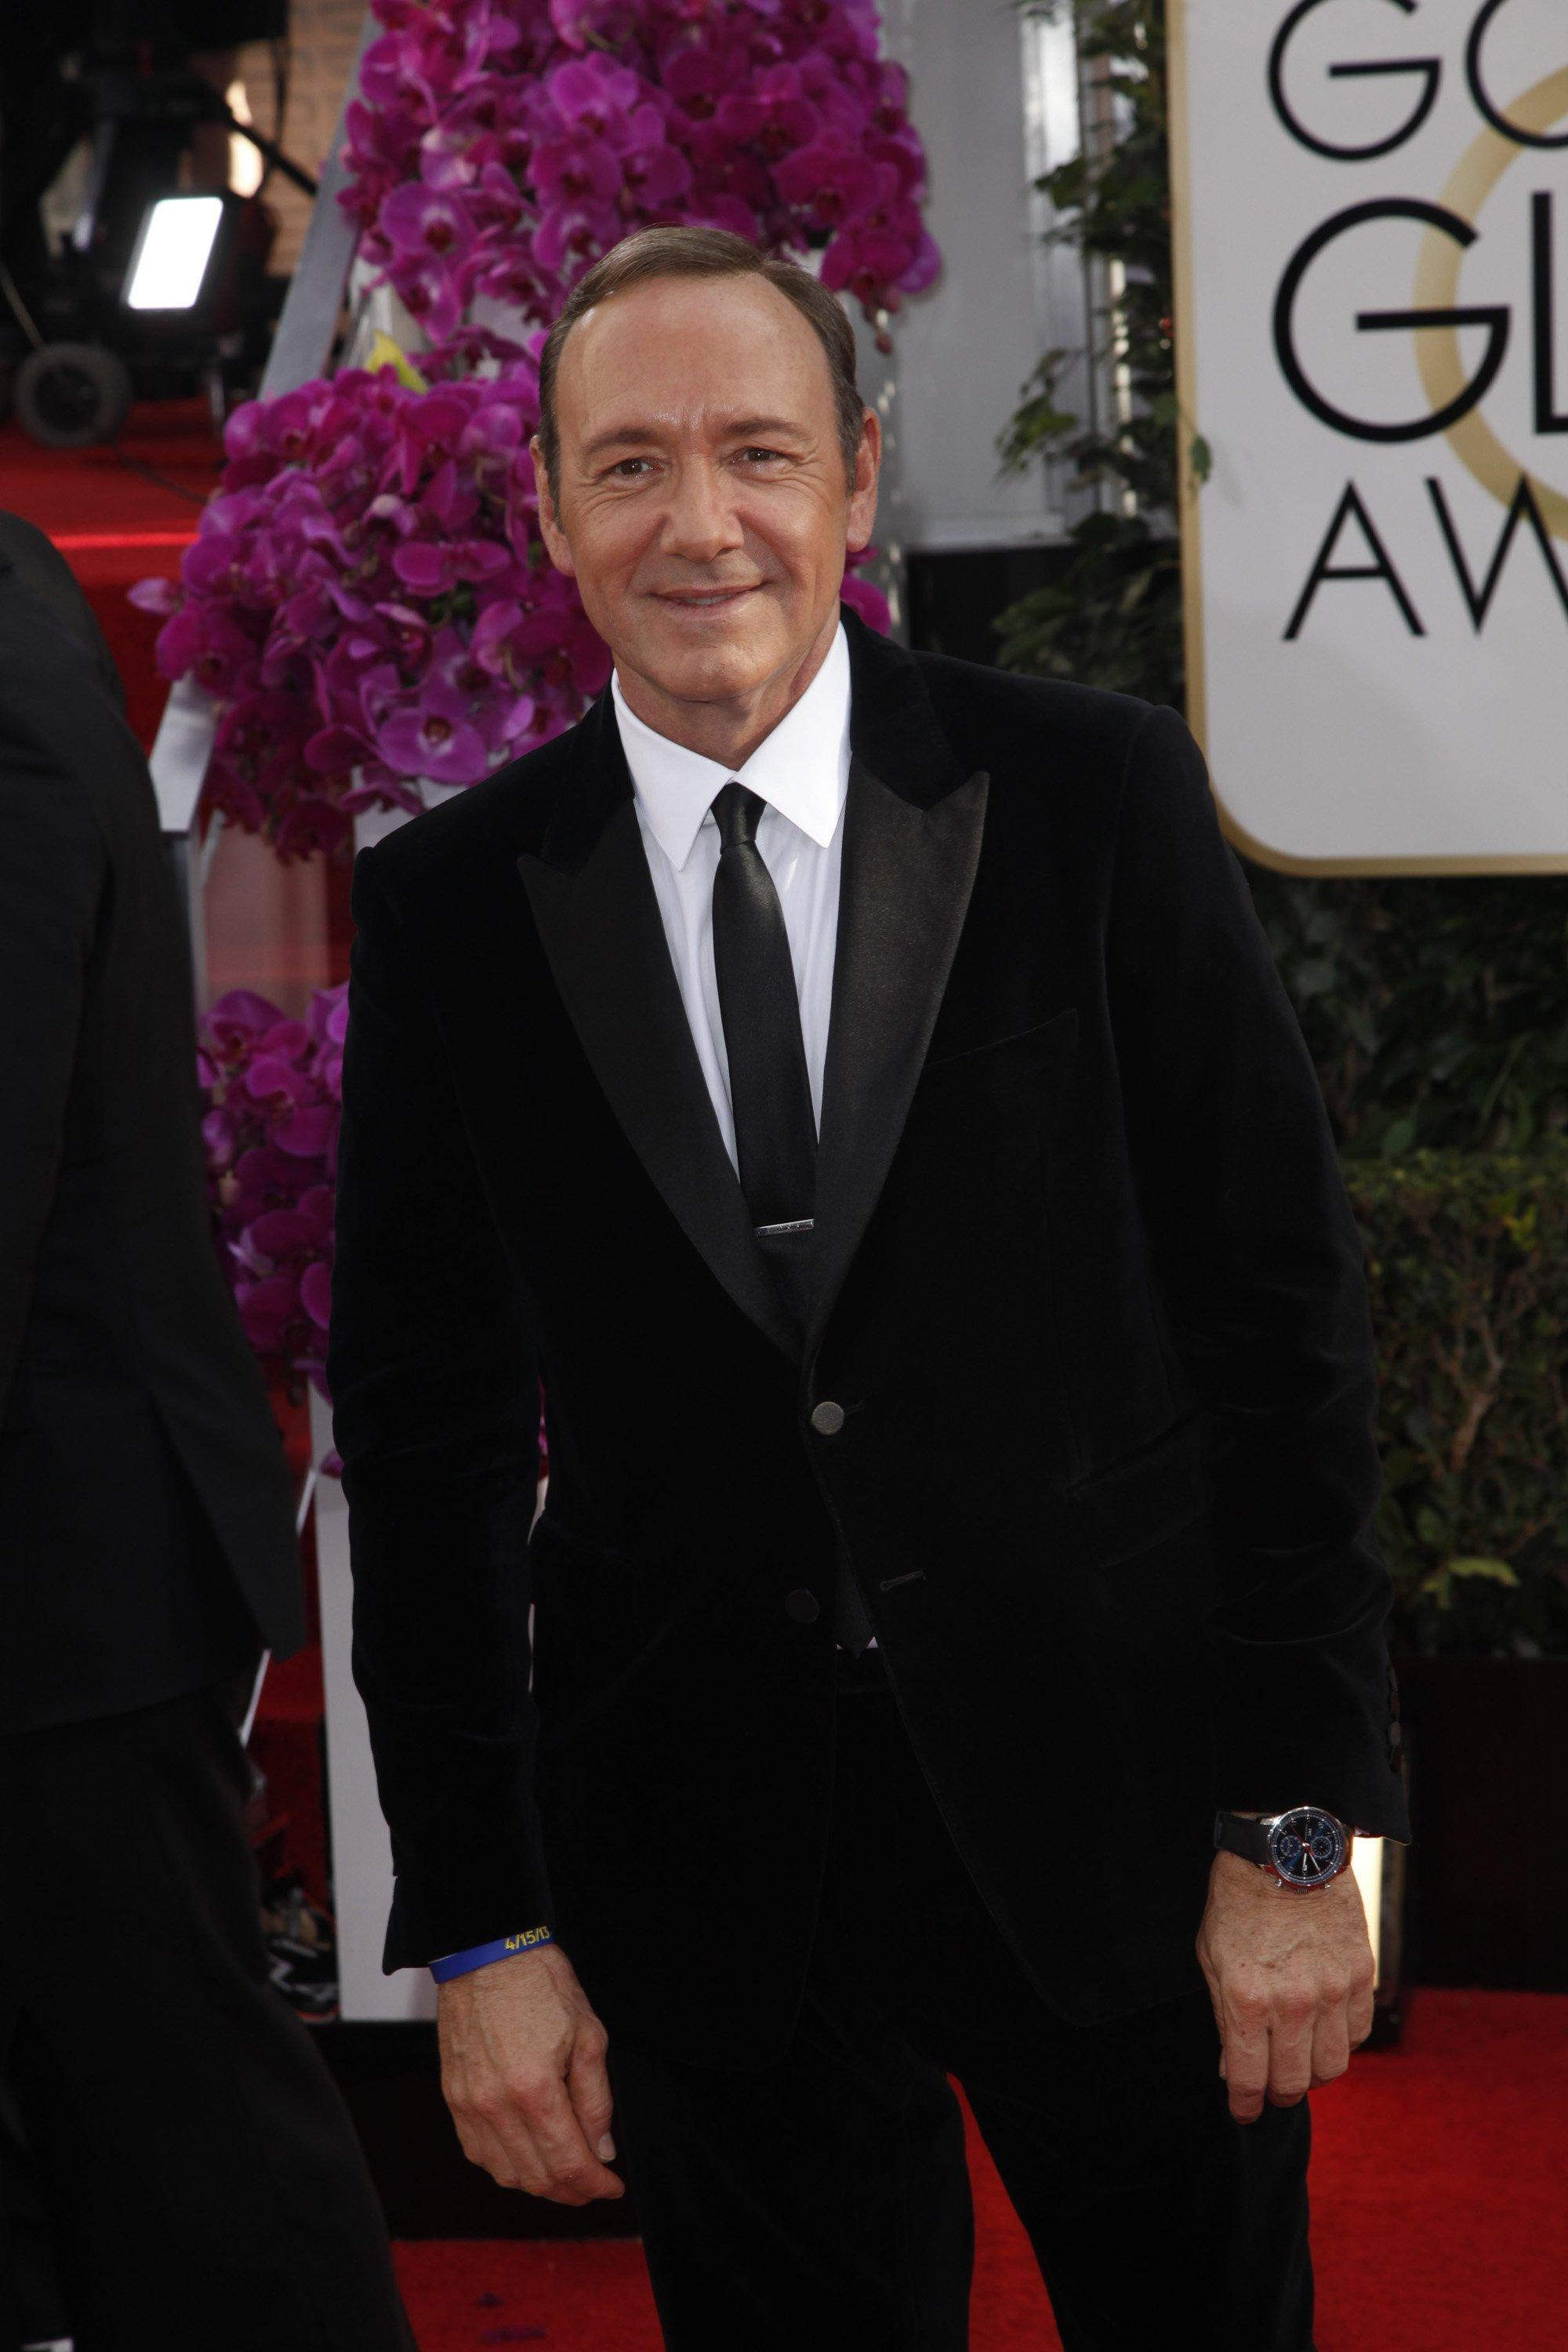 Kevin Spacey arrives at the 71st Annual Golden Globe Awards show at the Beverly Hilton Hotel on Sunday, Jan. 12, 2014, in Beverly Hills, Calif. (Kirk McKoy/Los Angeles Times/MCT)